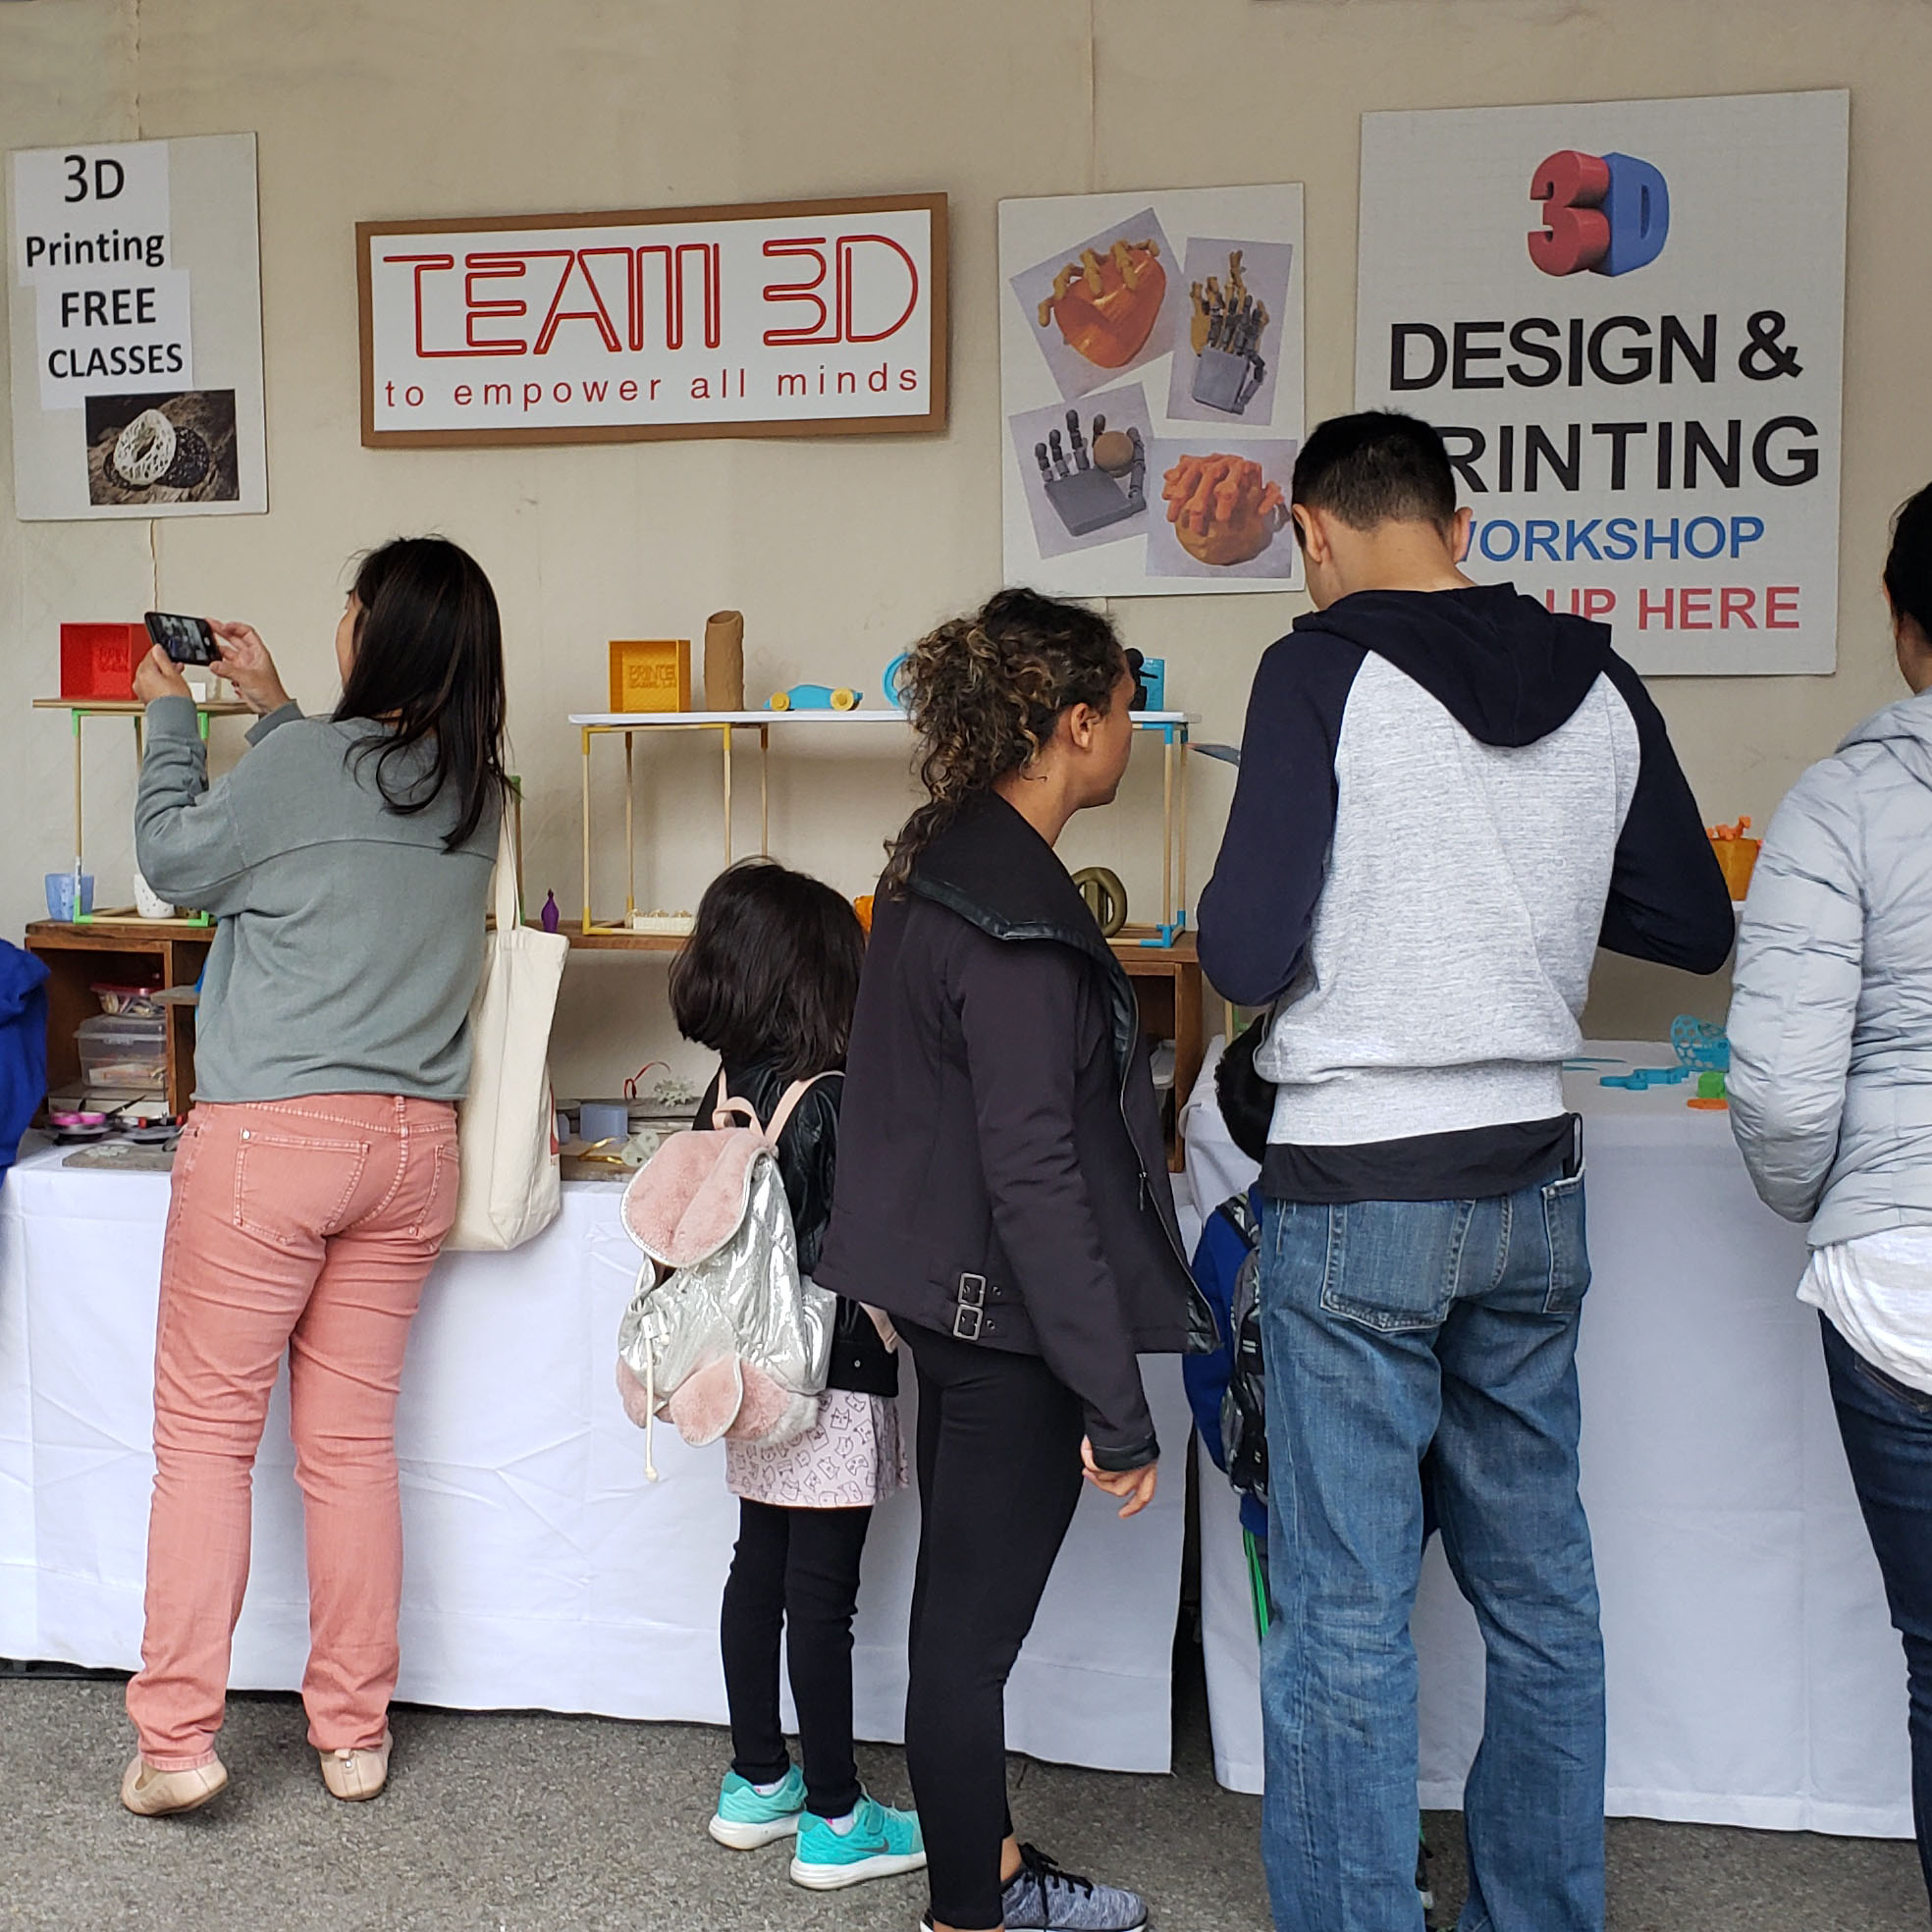 TEAM 3D STUDIO booth at 2018 WORLD MAKER FAIRE New York City